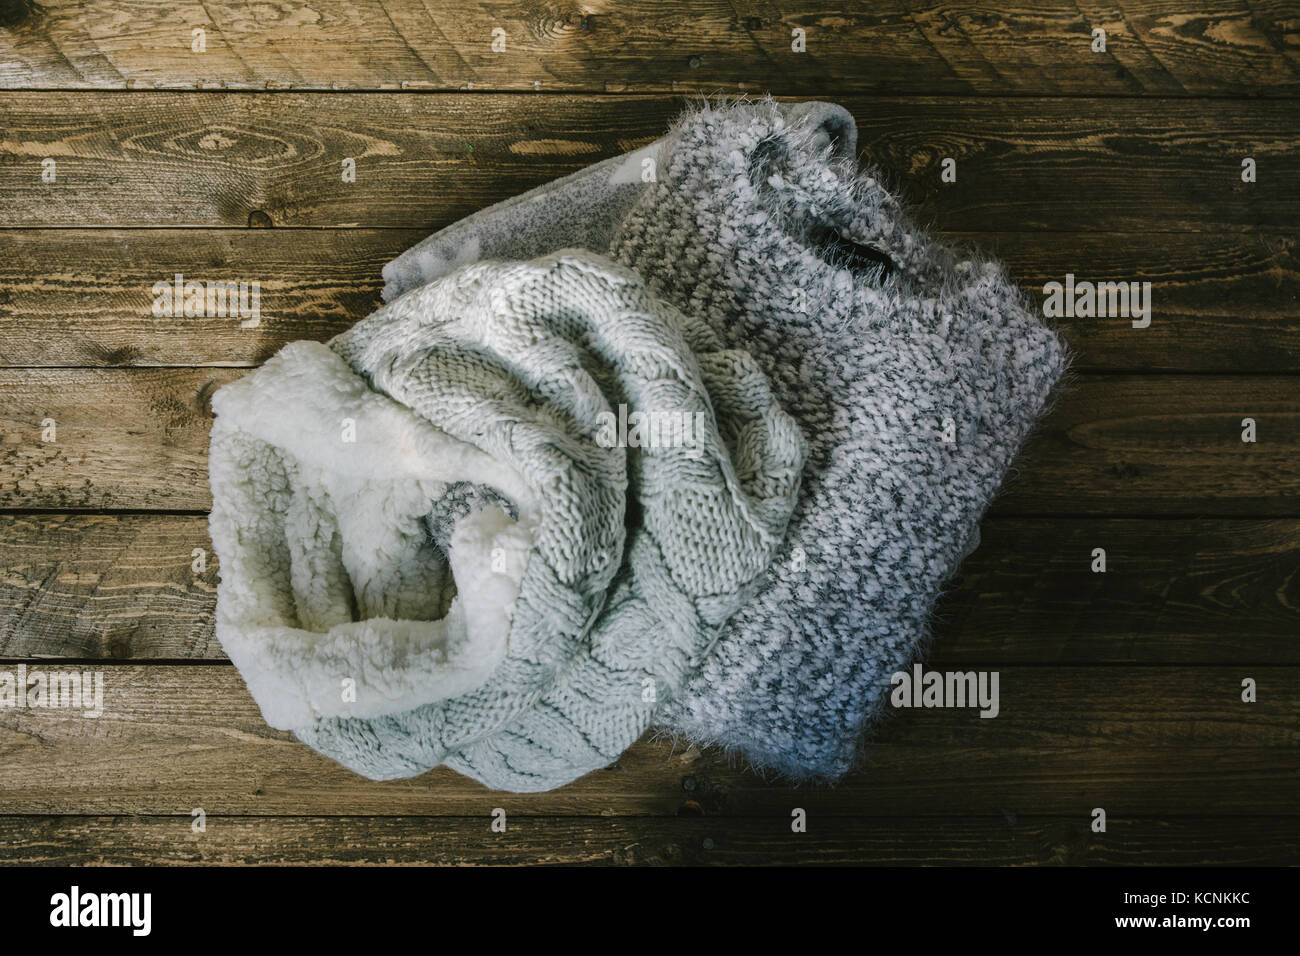 circular wool scarf and gray knit sweater over rustic wood, top view - Stock Image